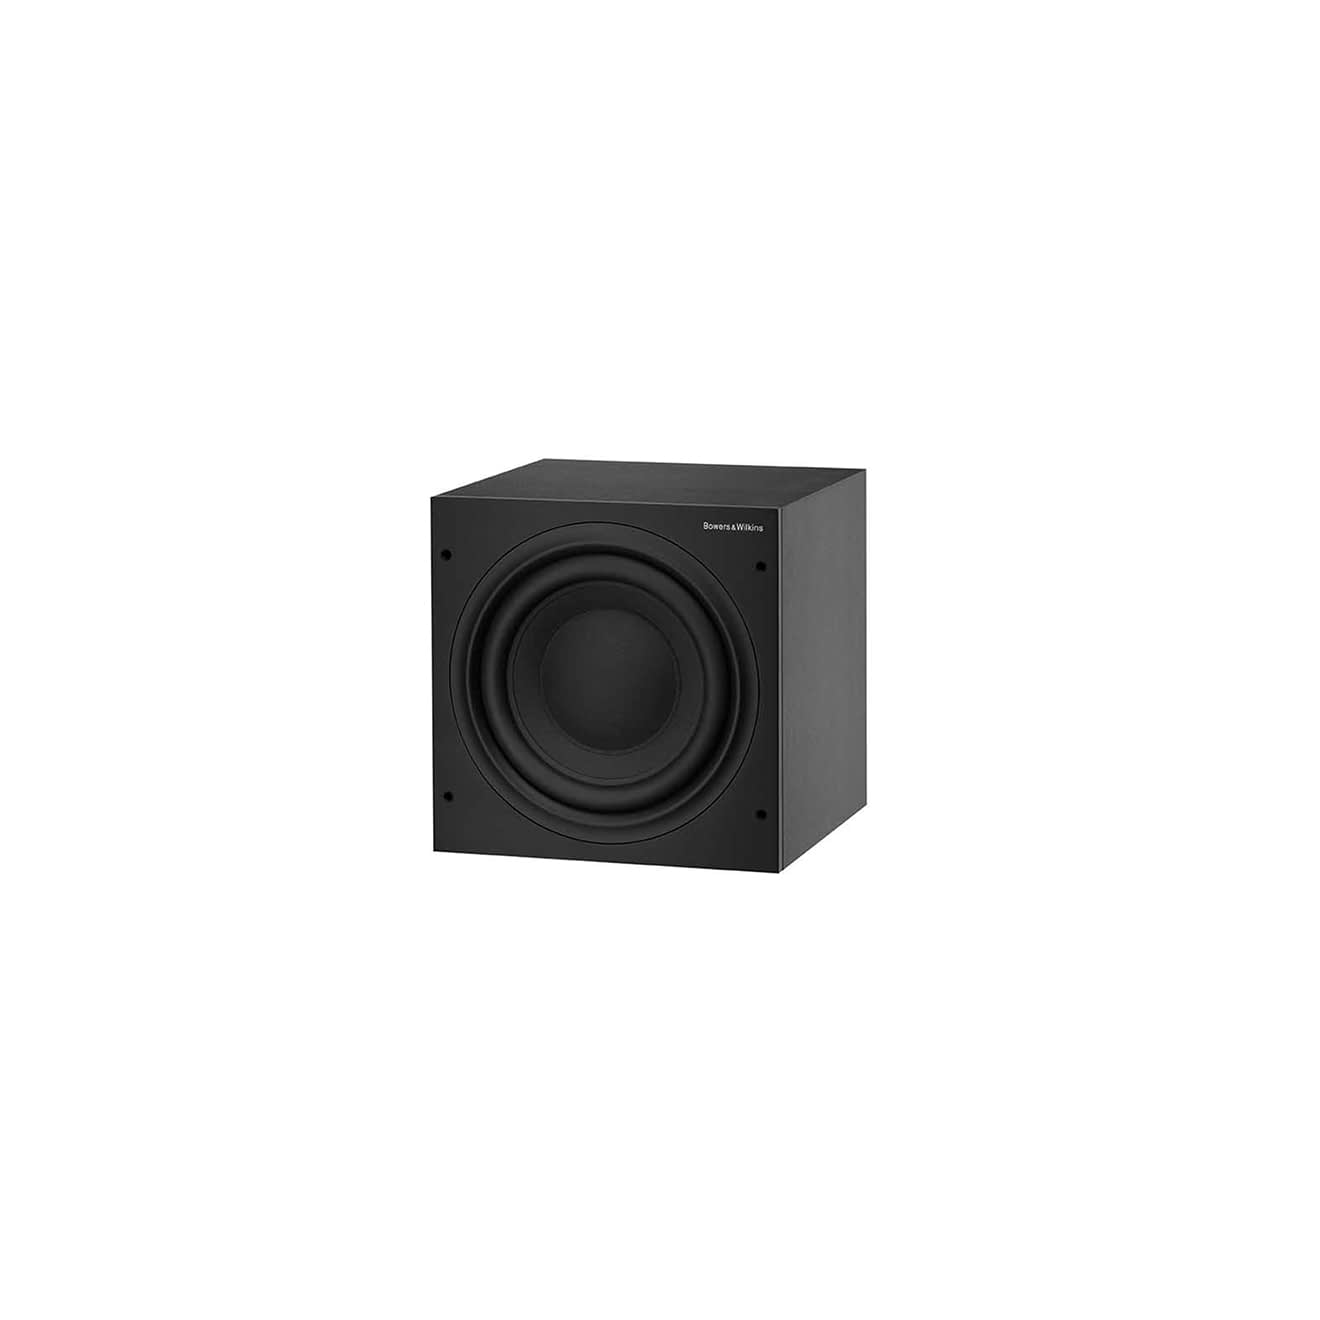 B&W ASW608-Black subwoofer